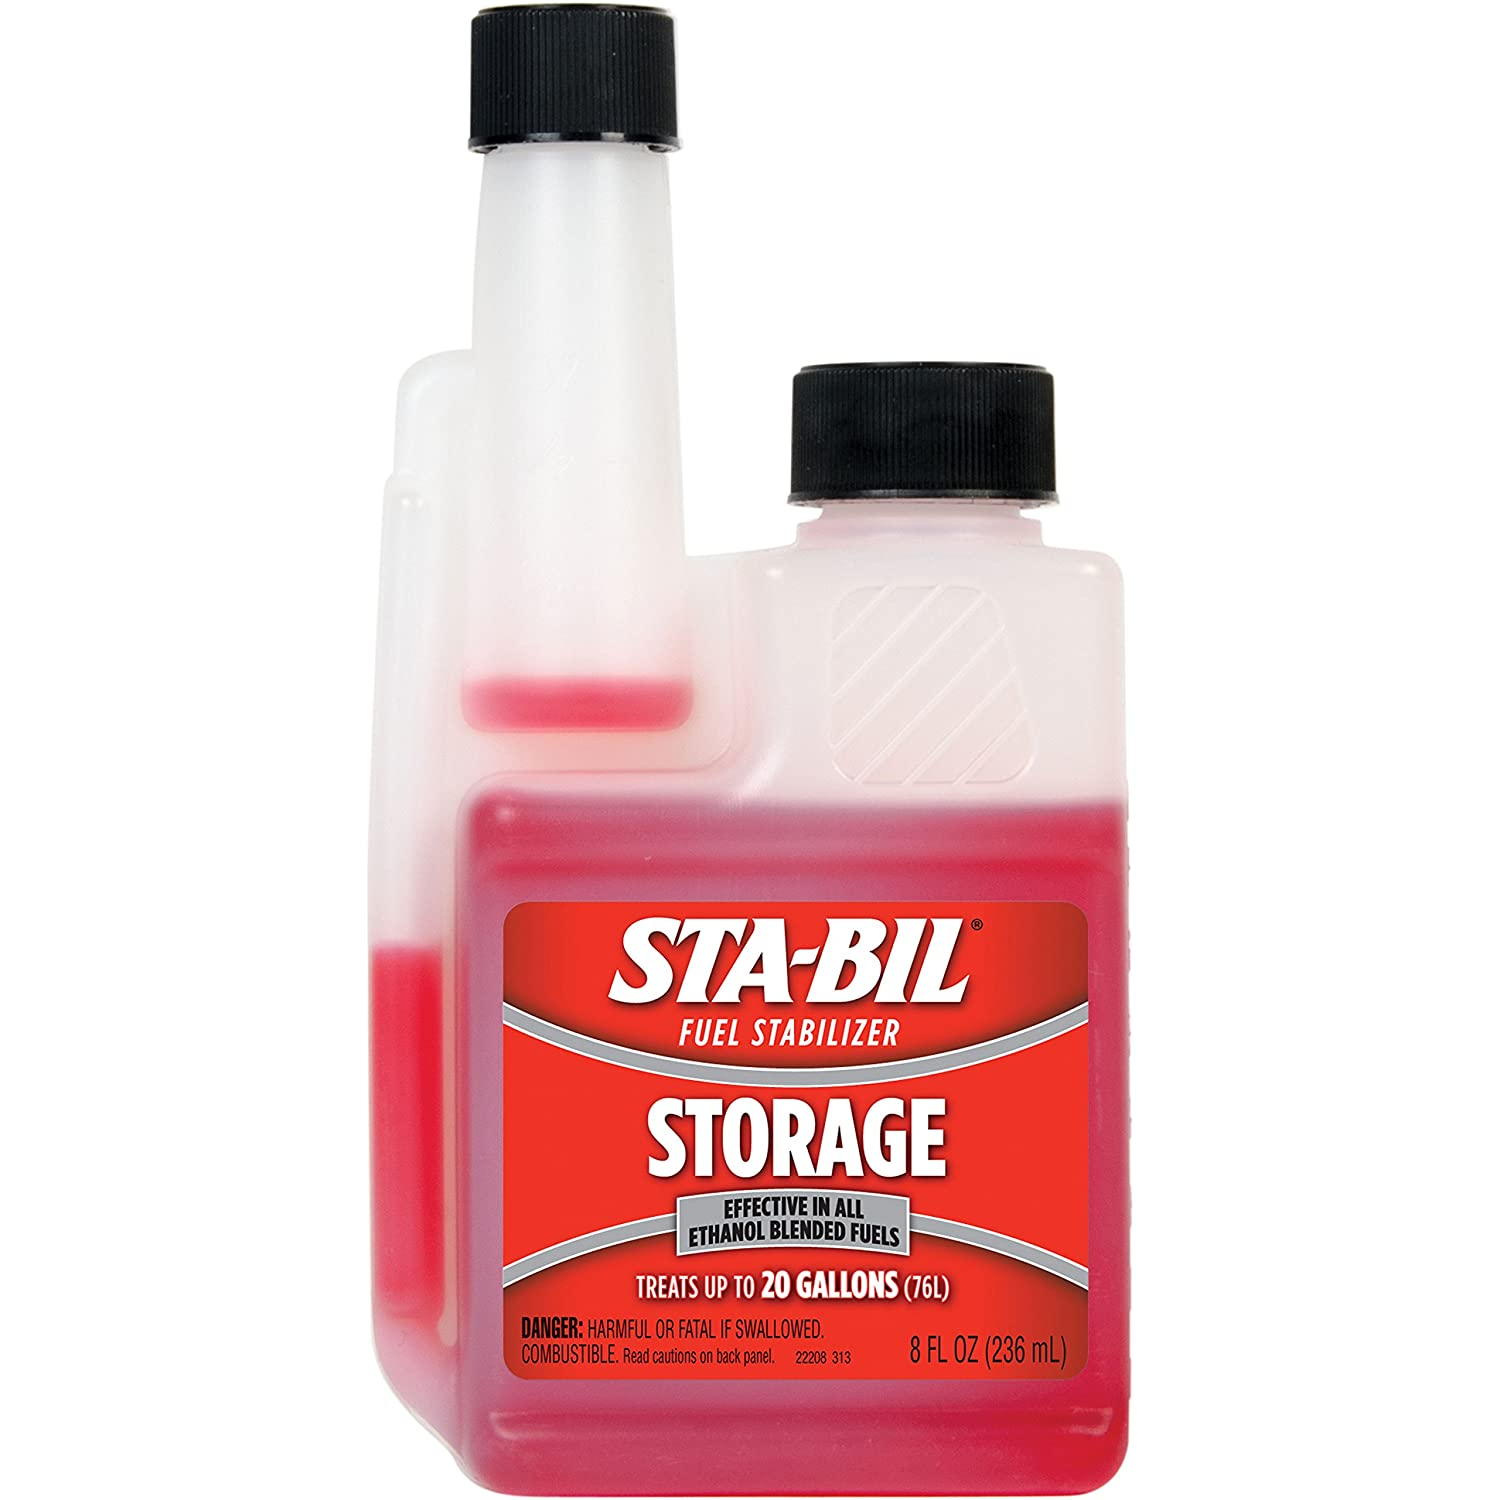 STA-BIL 22208 Fuel Stabilizer, 8. Fluid_Ounces